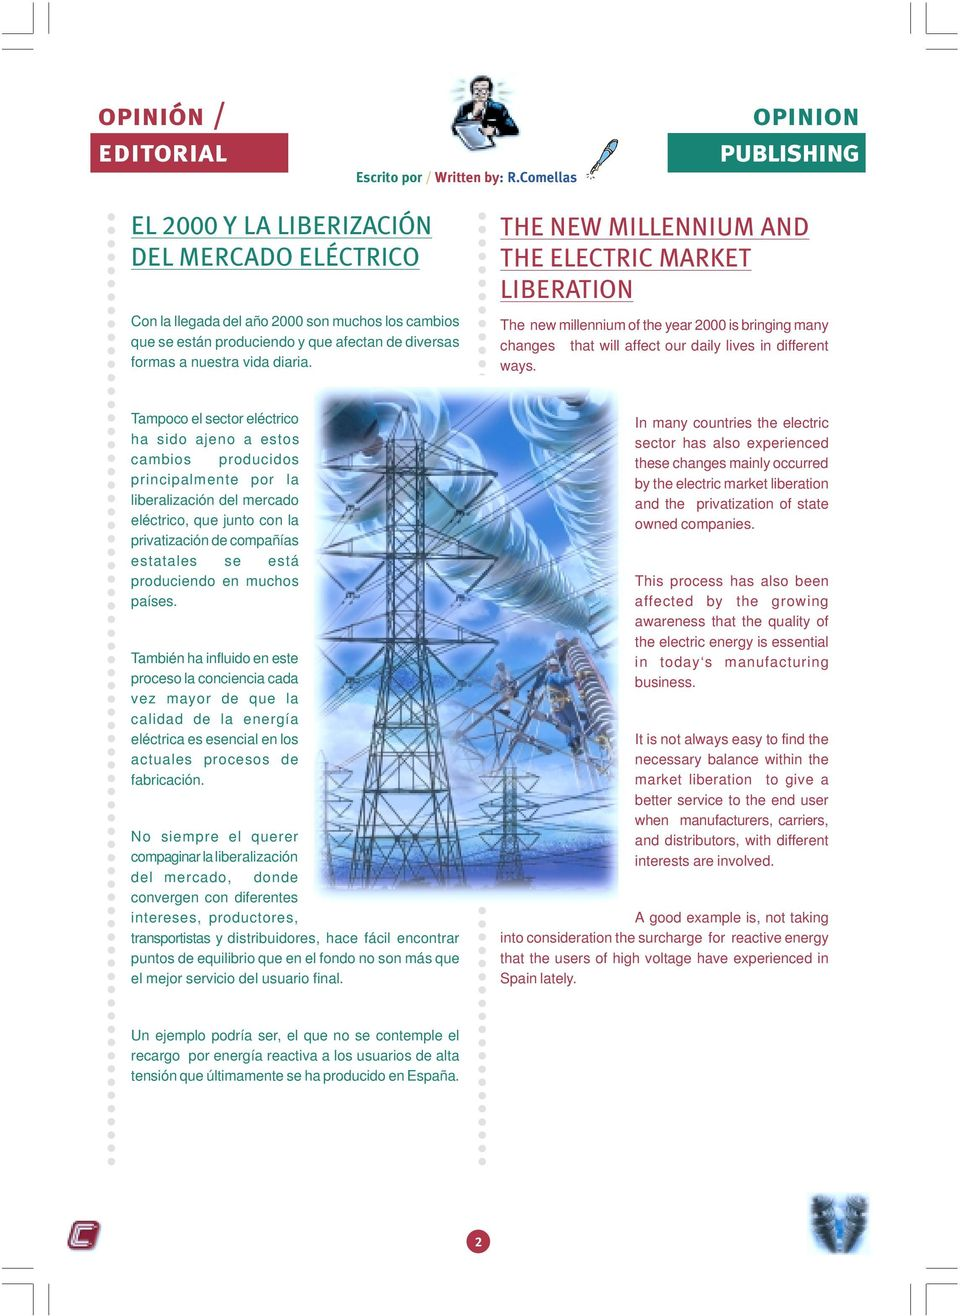 diaria. THE NEW MILLENNIUM AND THE ELECTRIC MARKET LIBERATION The new millennium of the year 2000 is bringing many changes that will affect our daily lives in different ways.